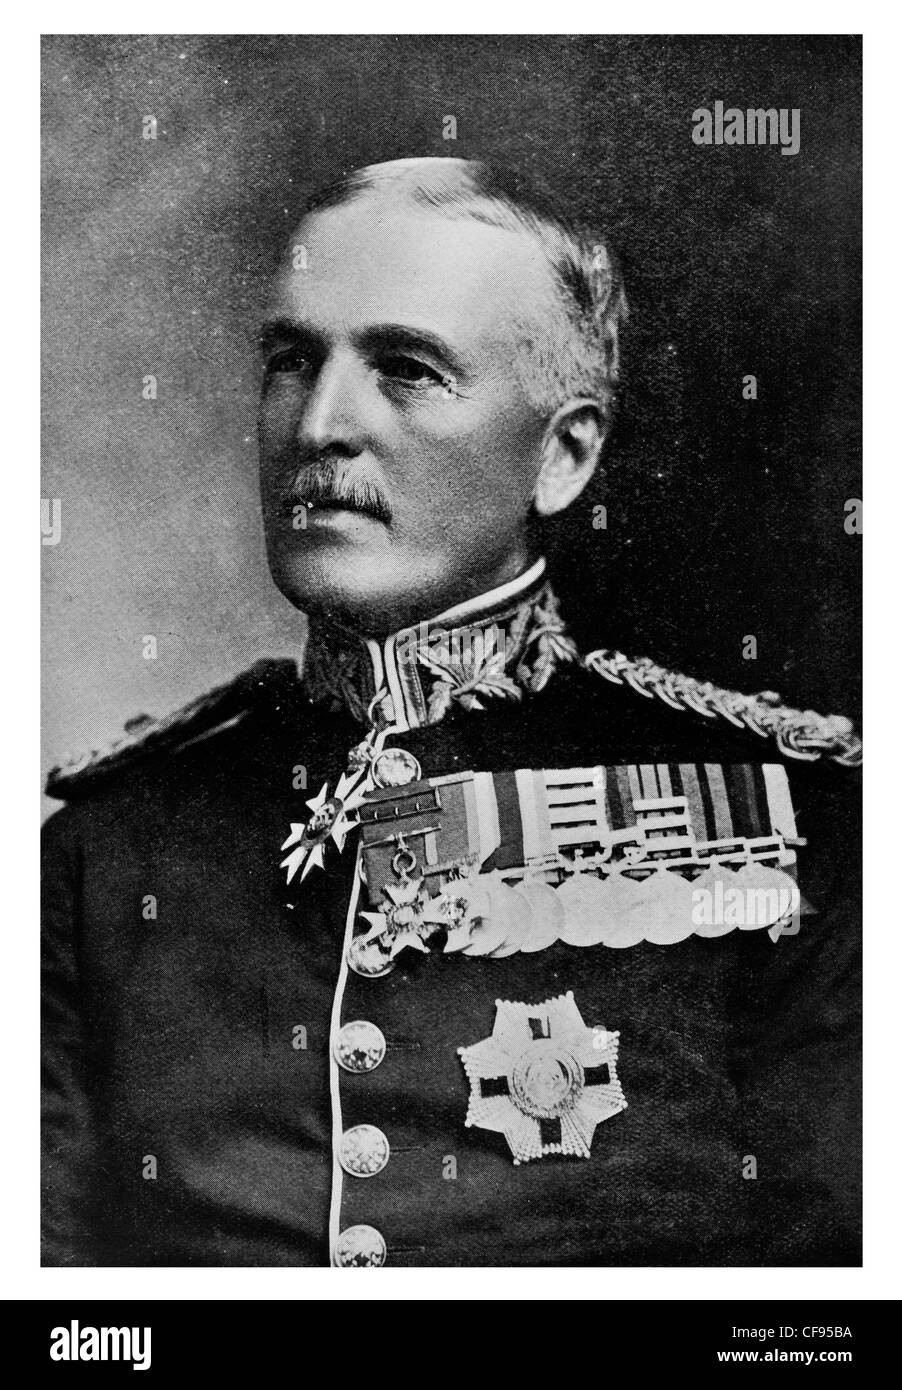 General Sir James Willcocks GCB GCMG KCSI DSO British Army officer who spent most of his career in India and Africa - Stock Image